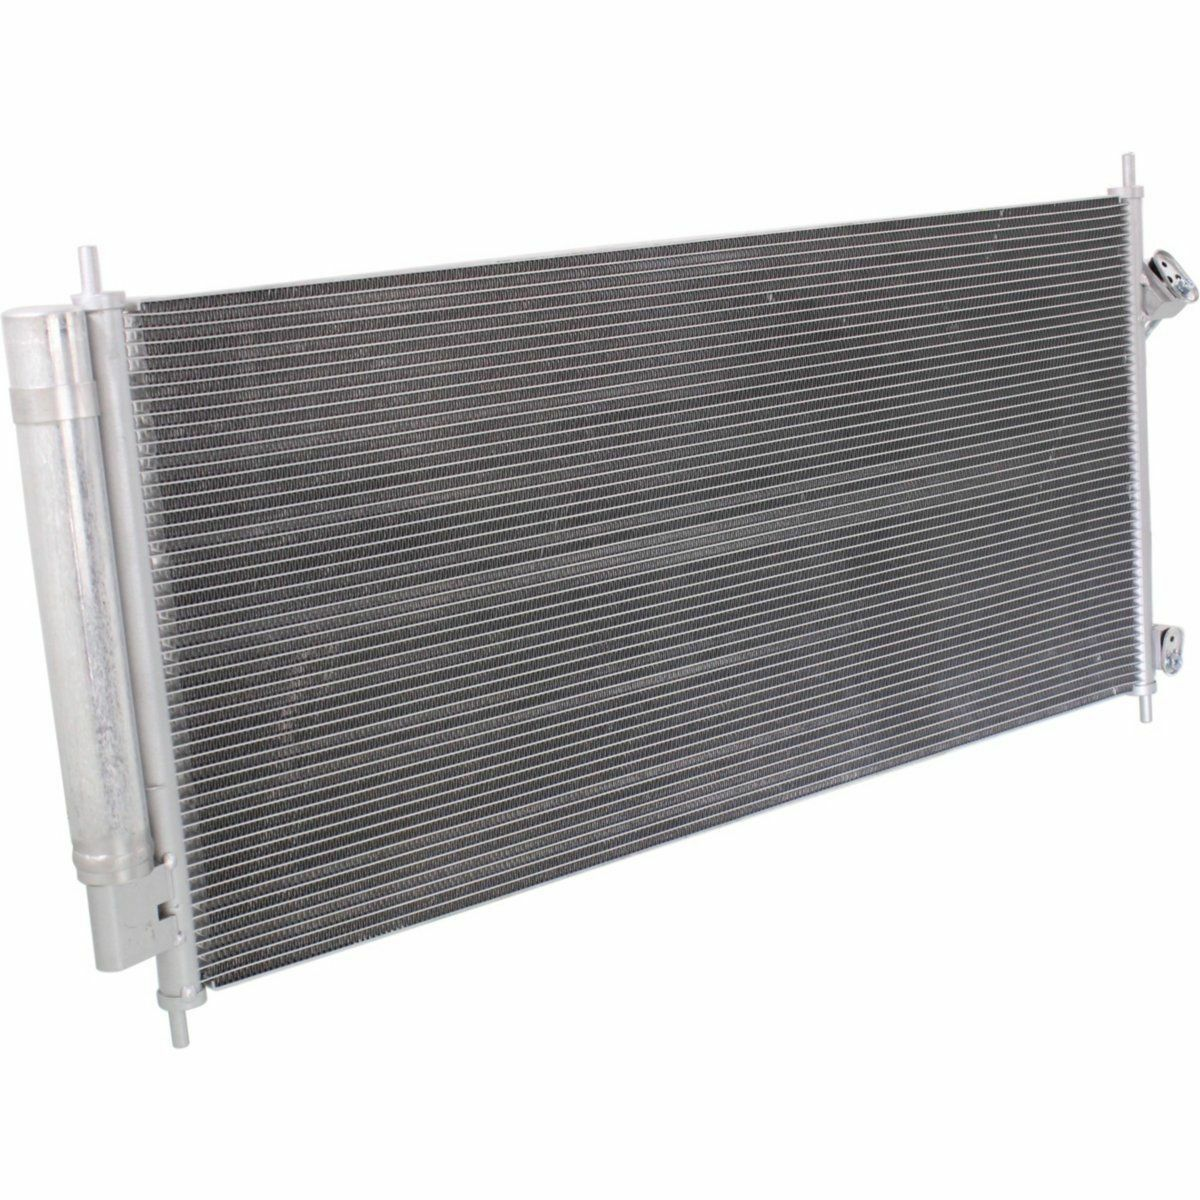 TYC 3783 A//C Condenser Assembly for Honda Fit 2009-2014 Models